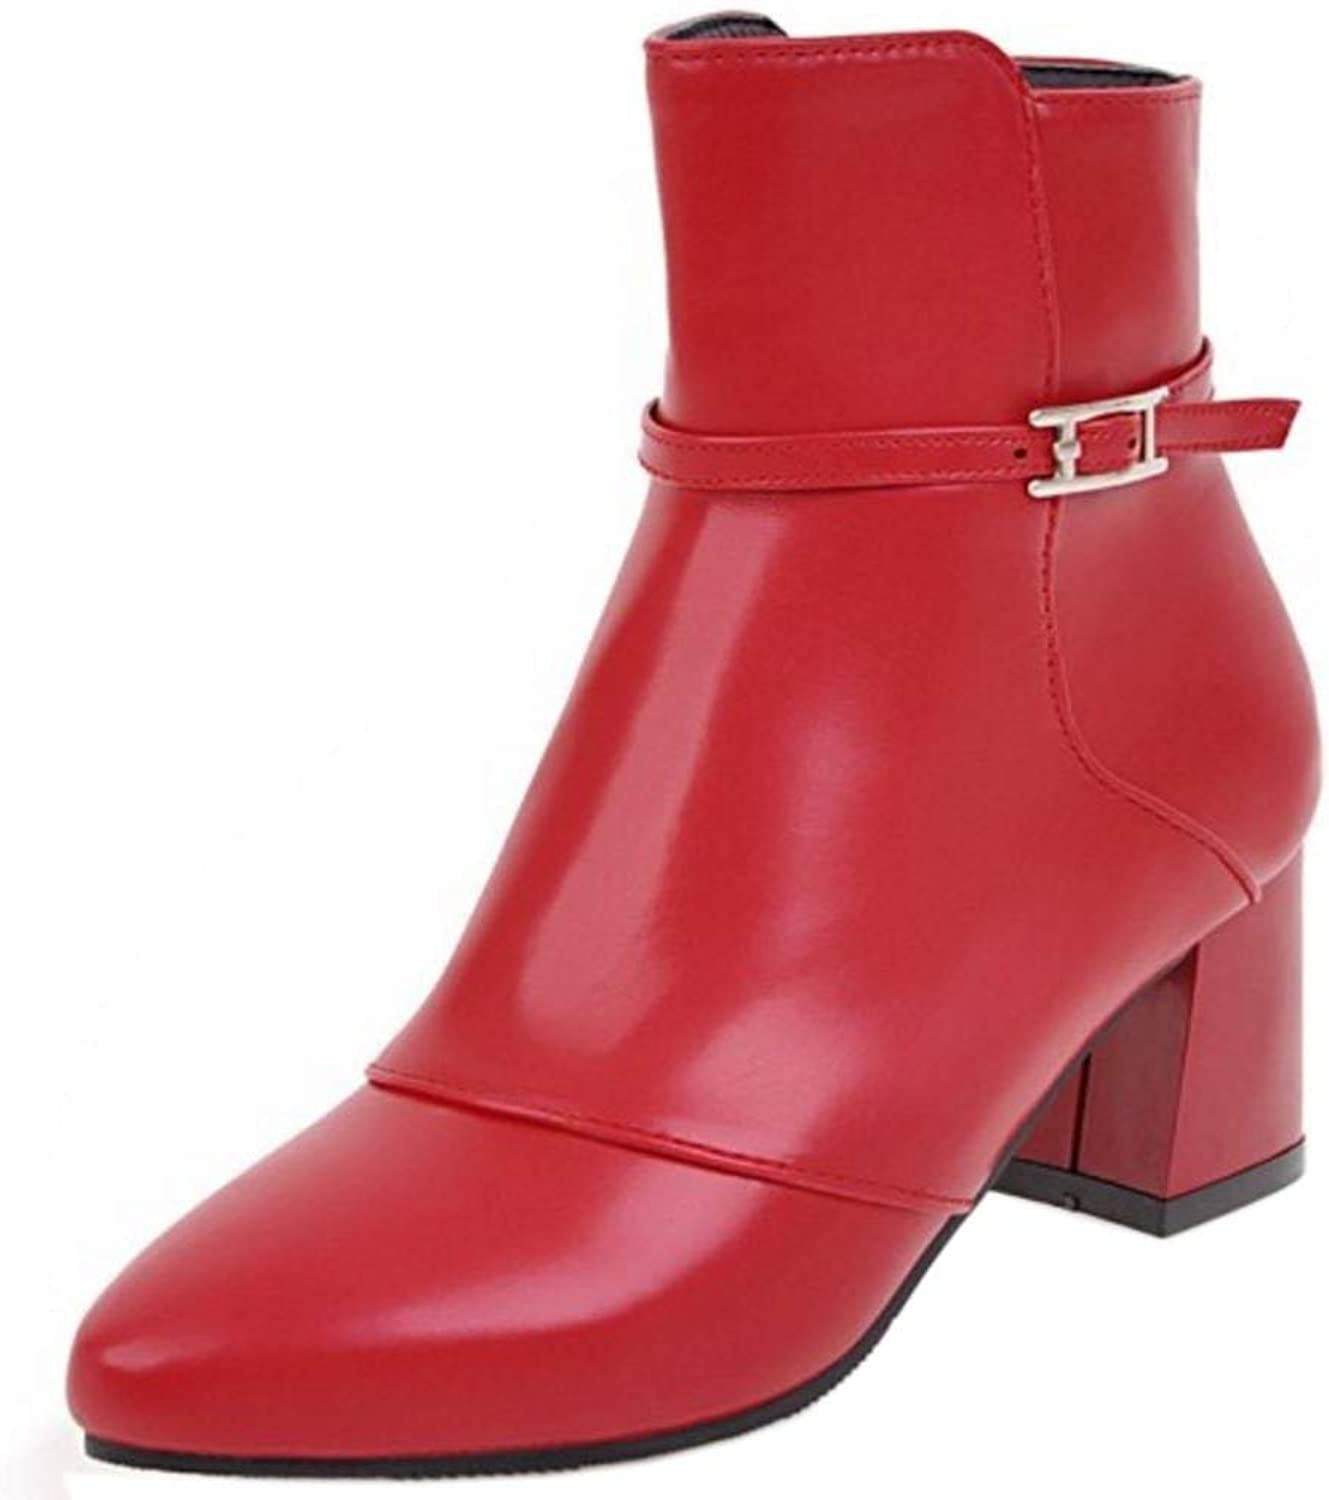 Unm Women's Booties Boots with Zipper